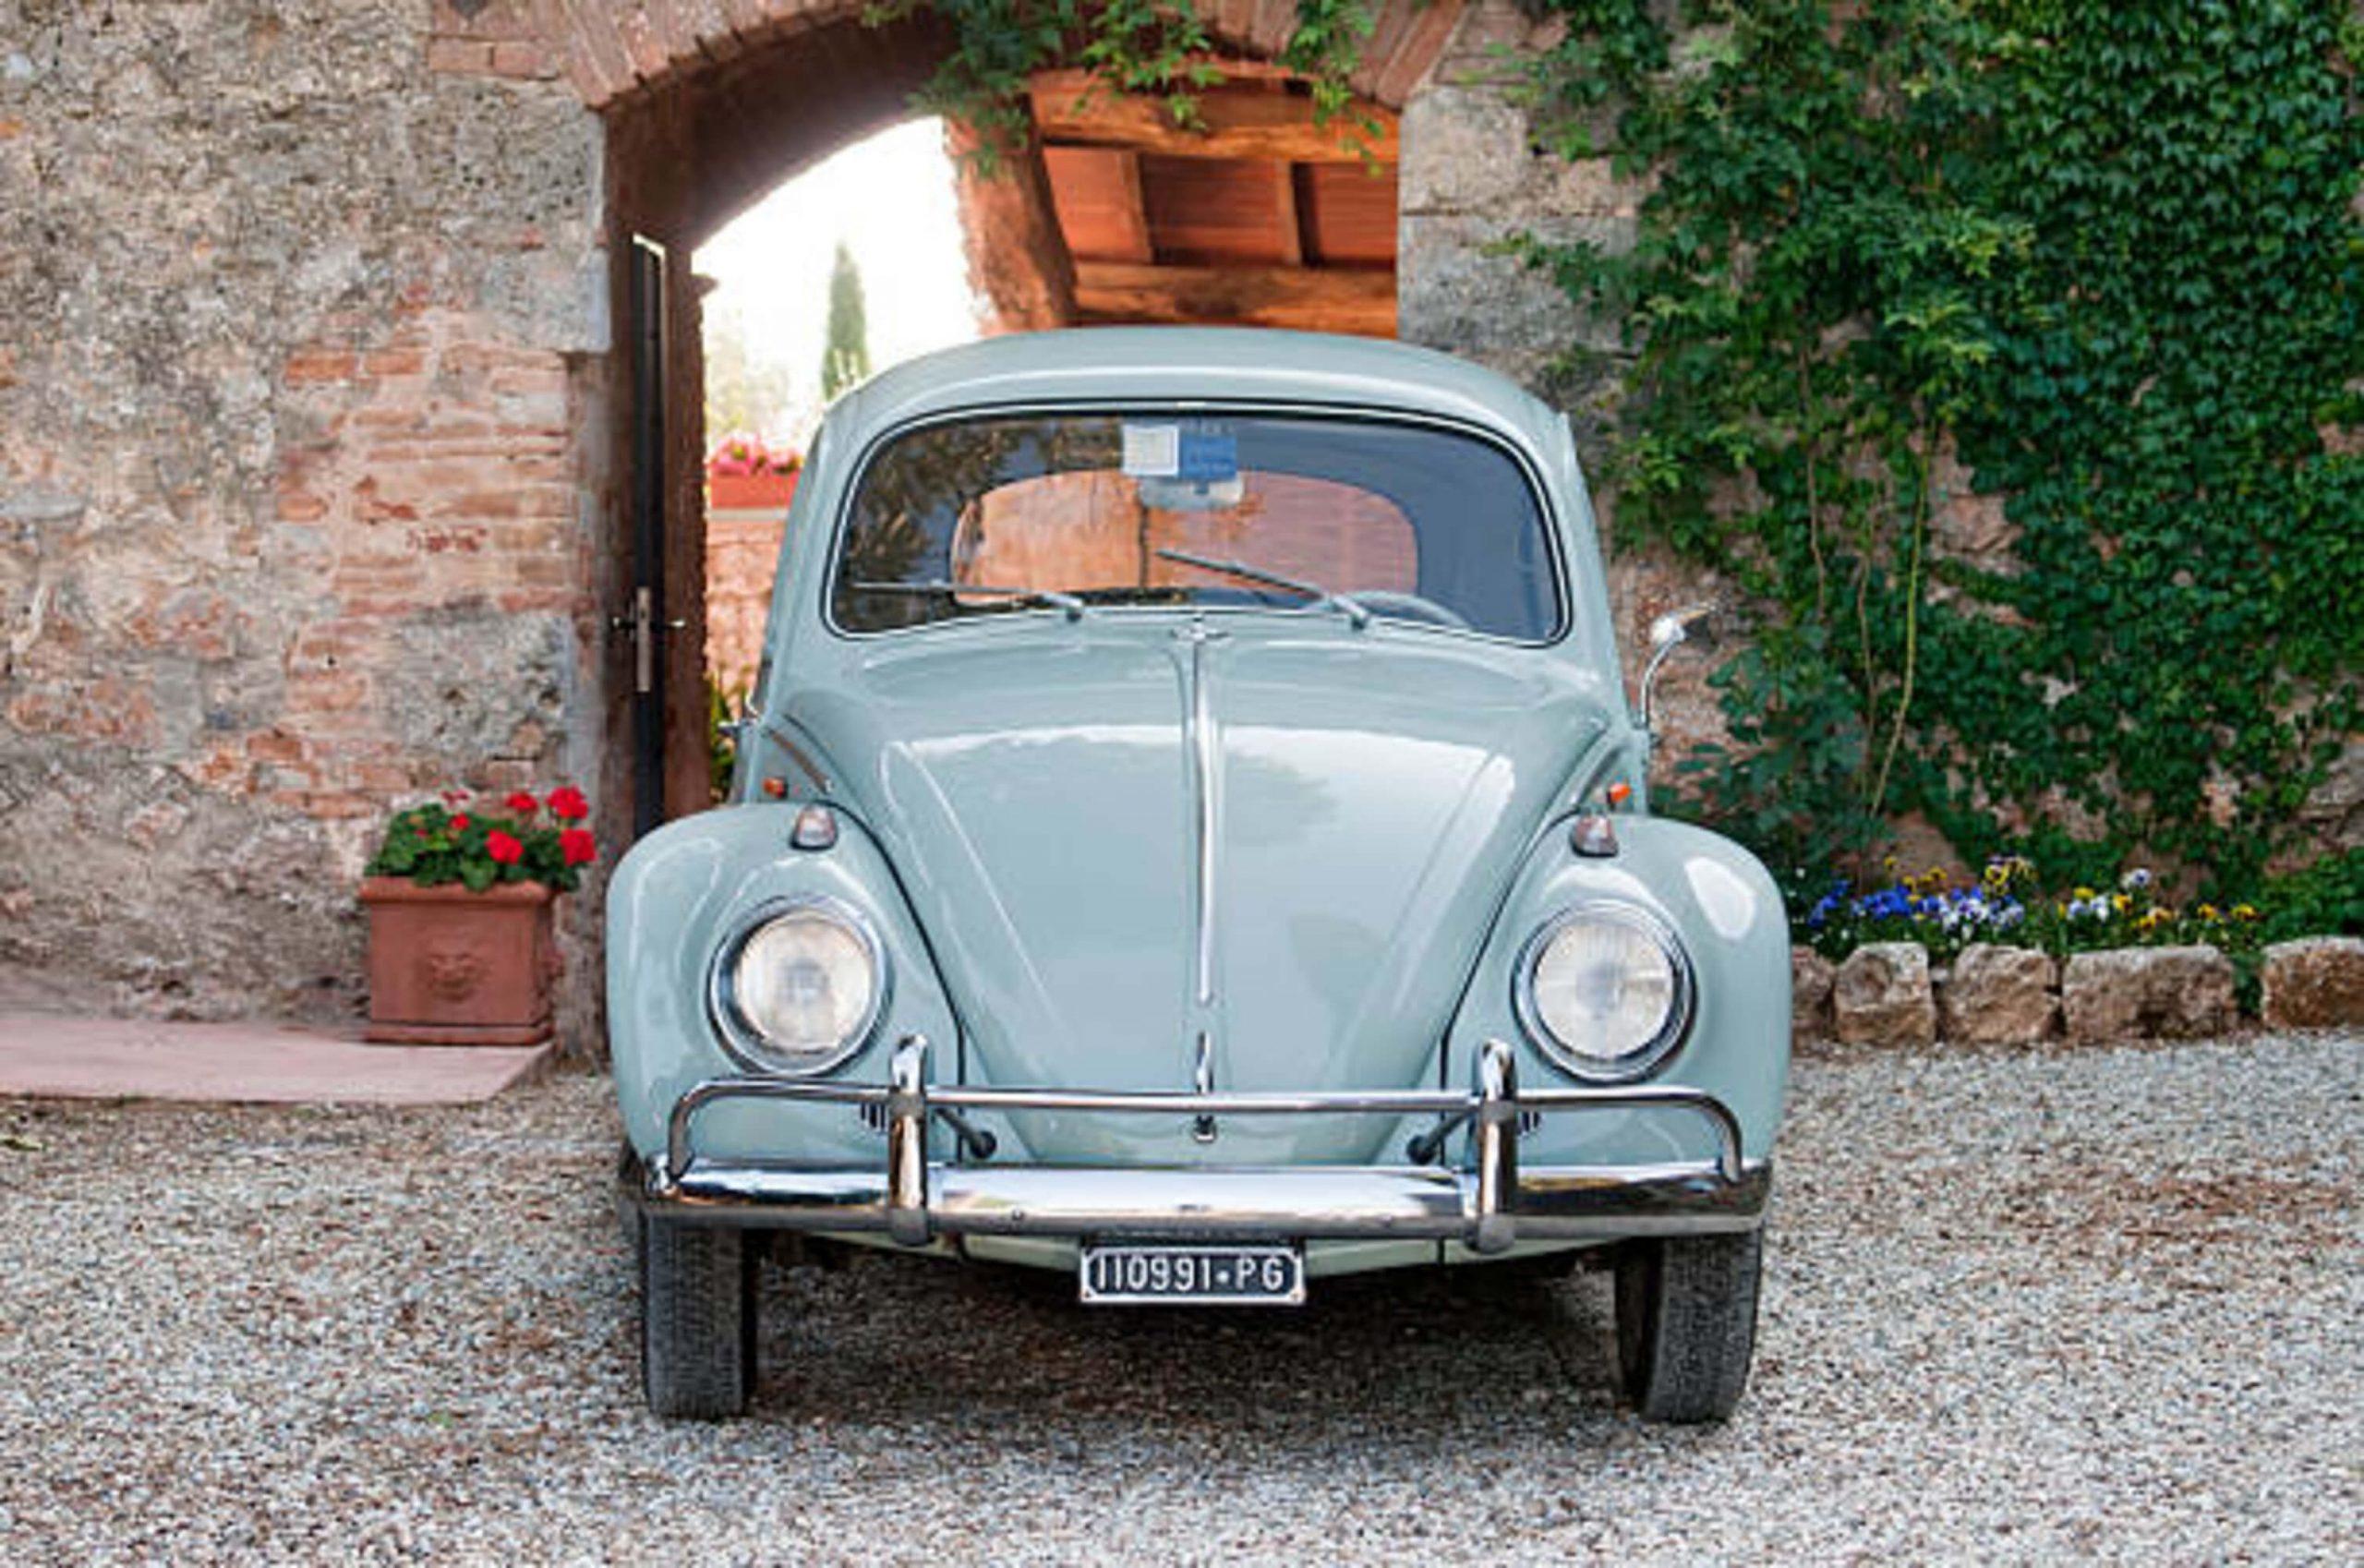 10 Things You Should Know Before Buying a Used Volkswagen Bug